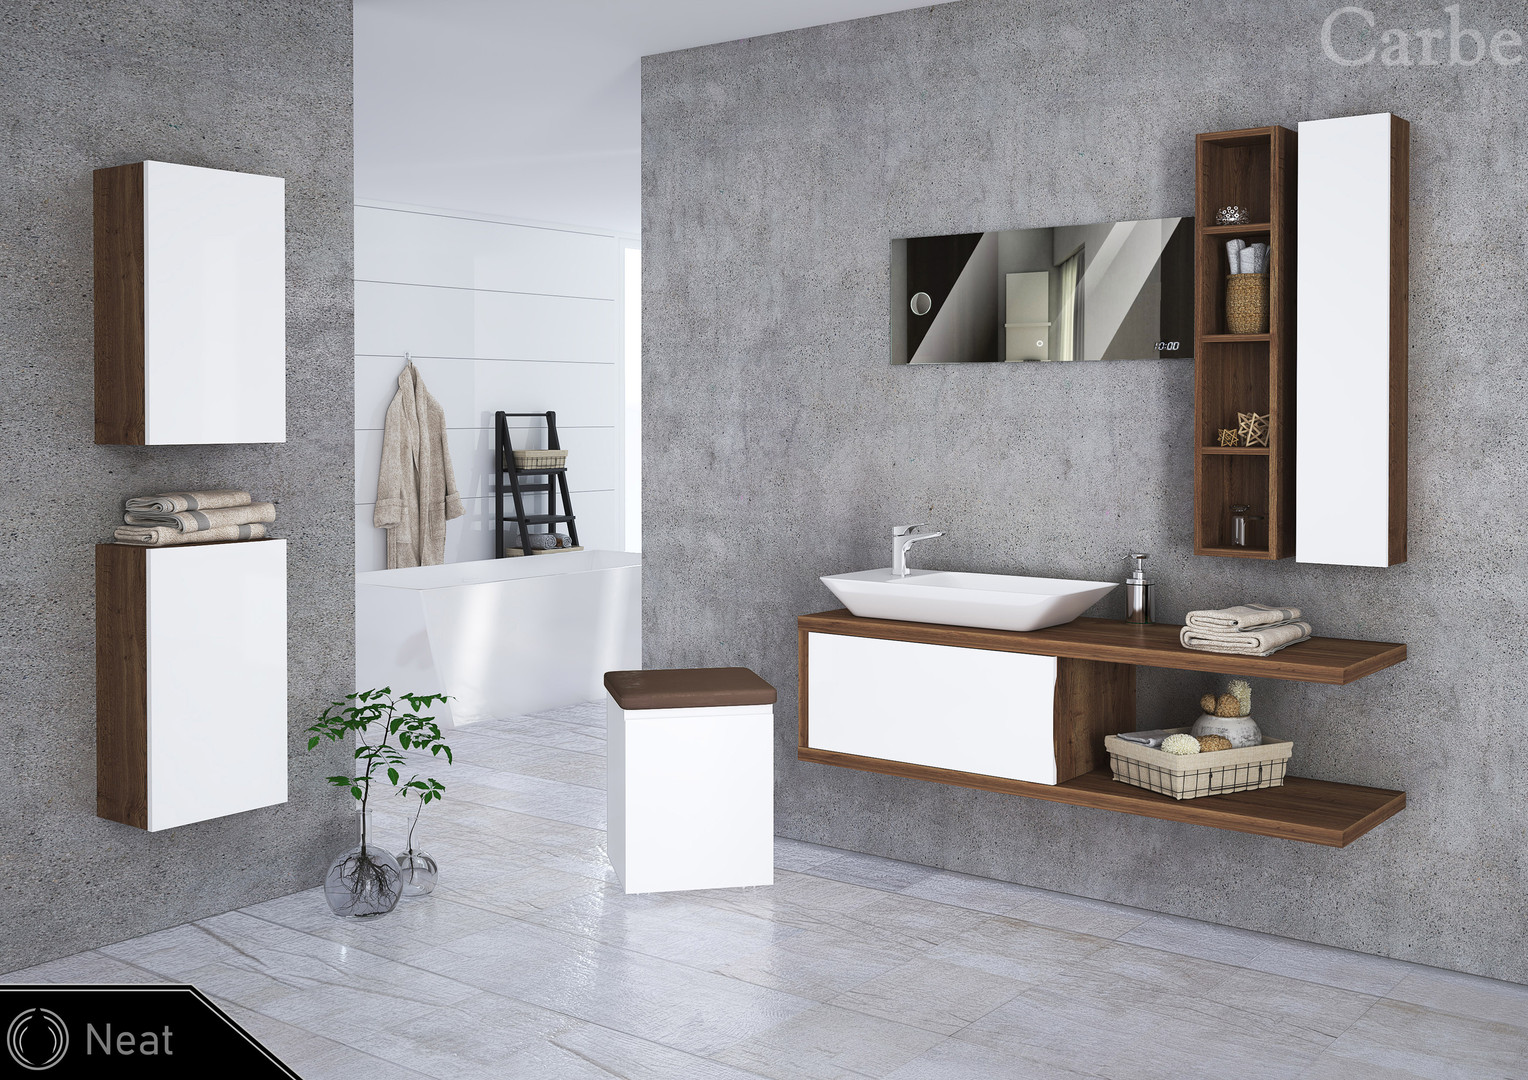 Neat - Oak Halifax Tabak, Arctic White High Gloss, Ceramic Washbasin, Soft Closing